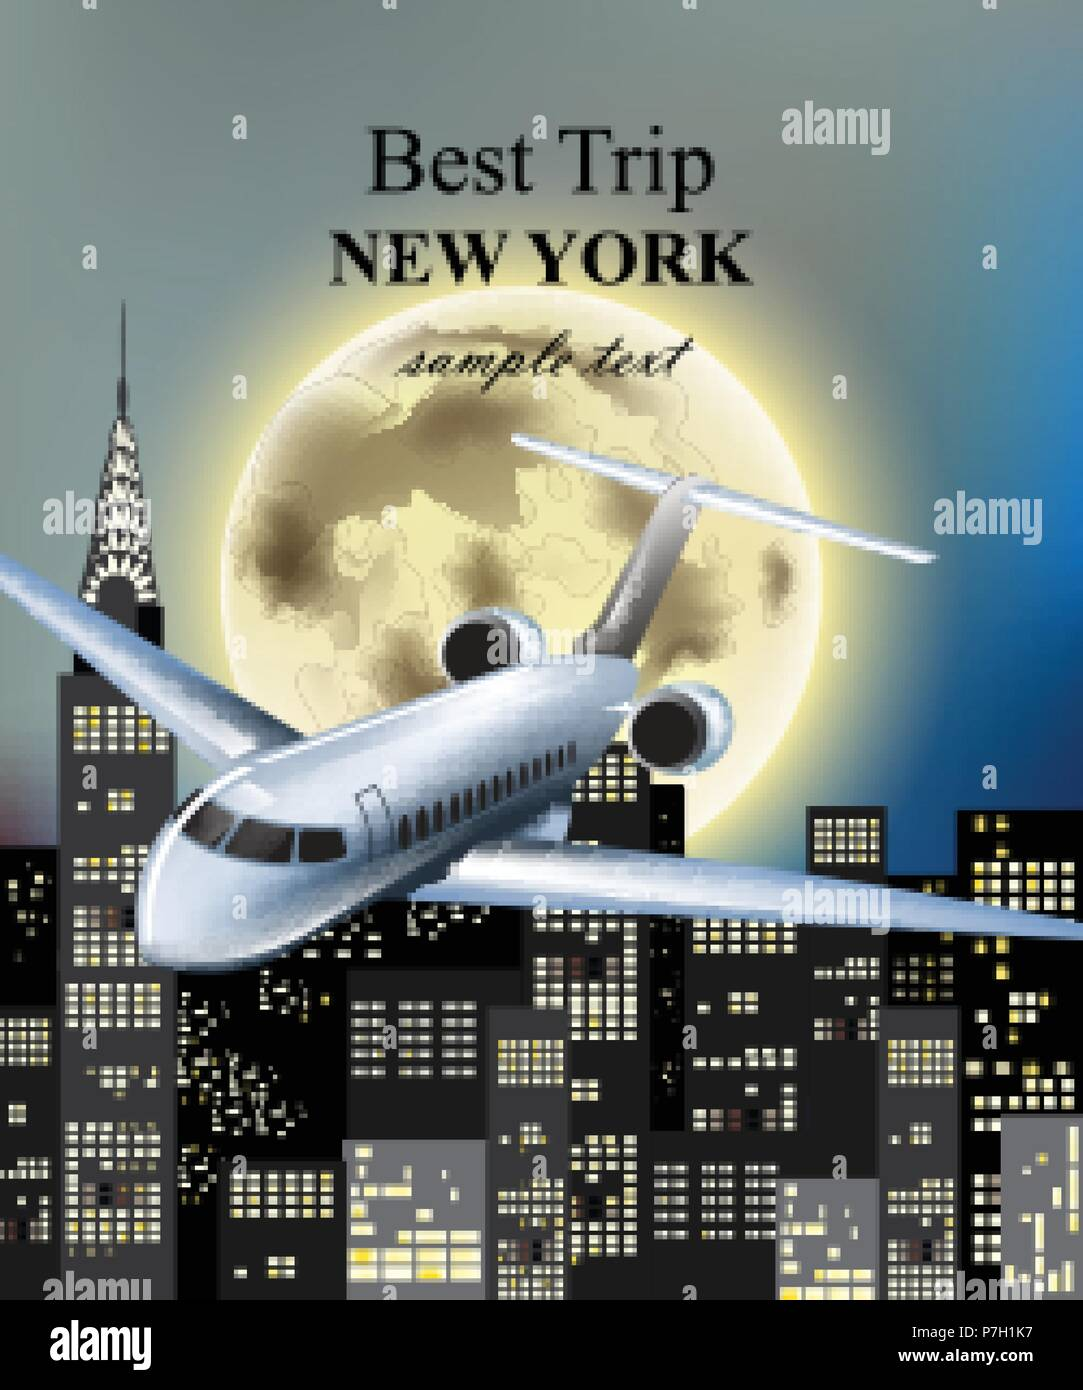 Plane flying over New York city at night Vector. Full moon and skyscrapers background - Stock Vector